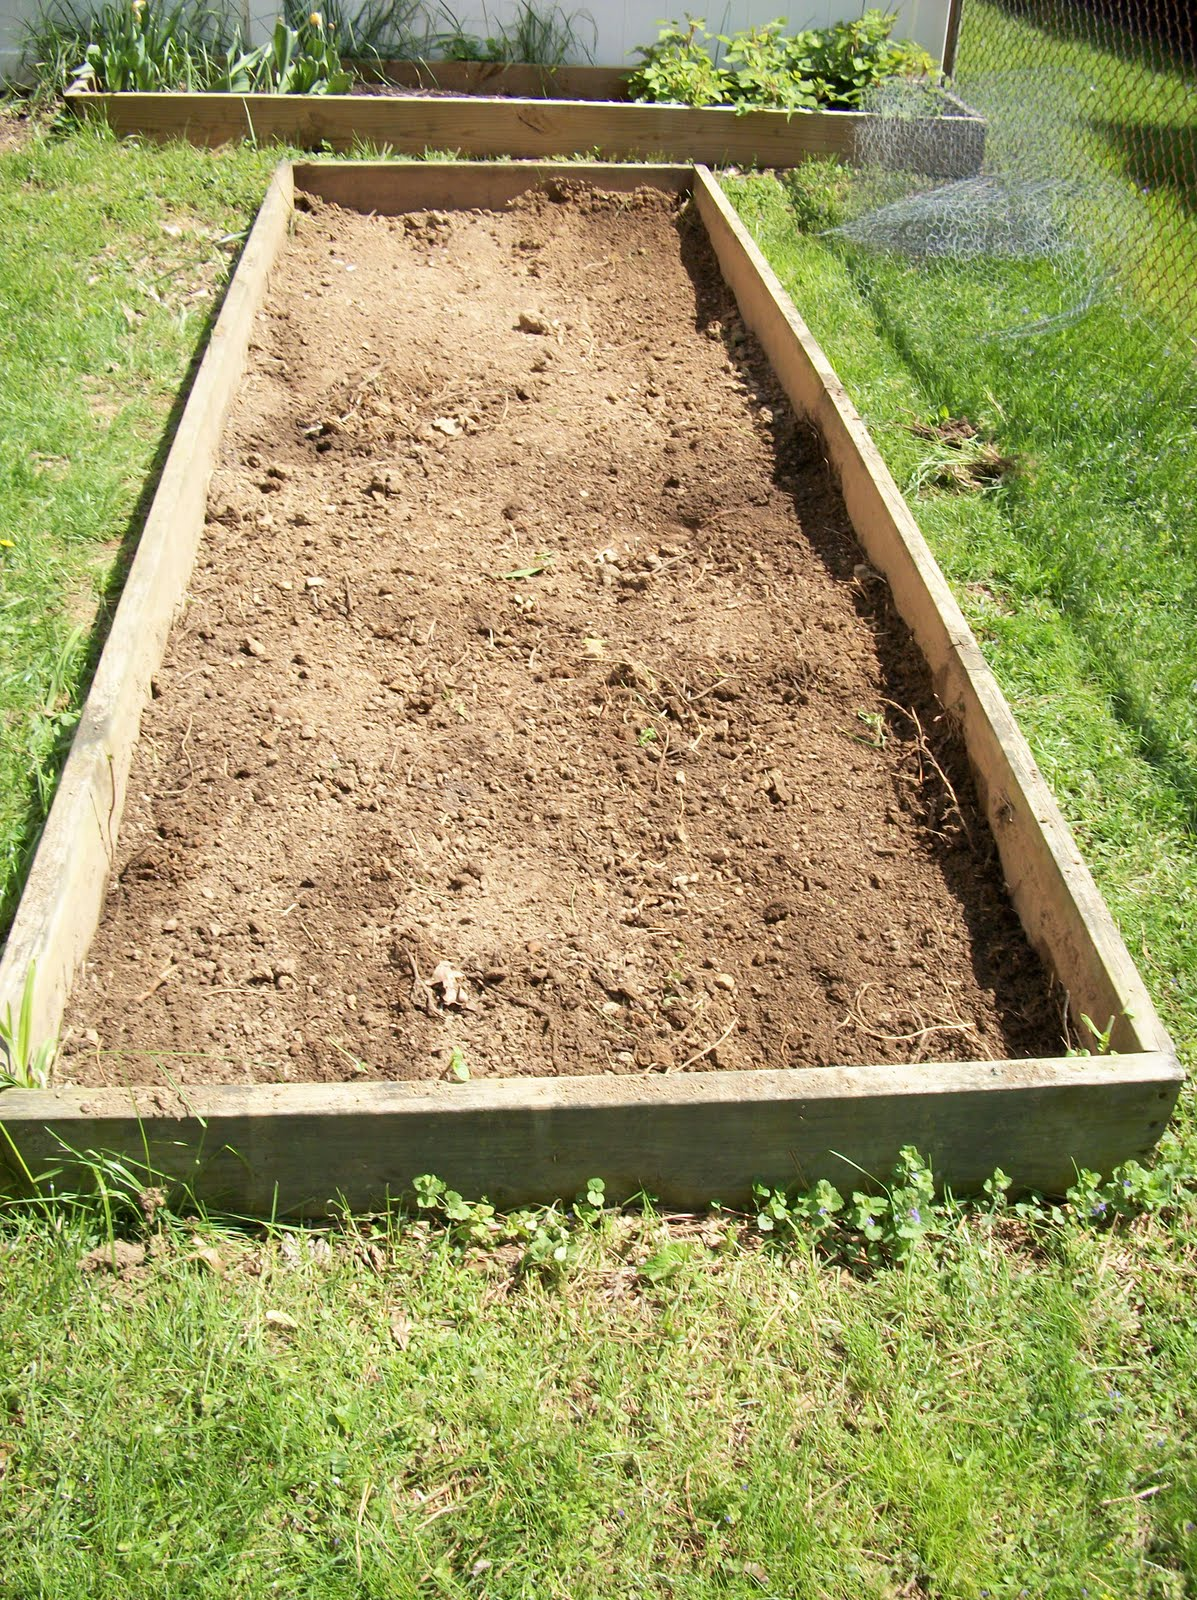 Last Year, I Chronicled My Box Garden Conversion From Random Planting To  The More Calculated Method, Known As Square Foot Gardening. I Had Great  Success, ...